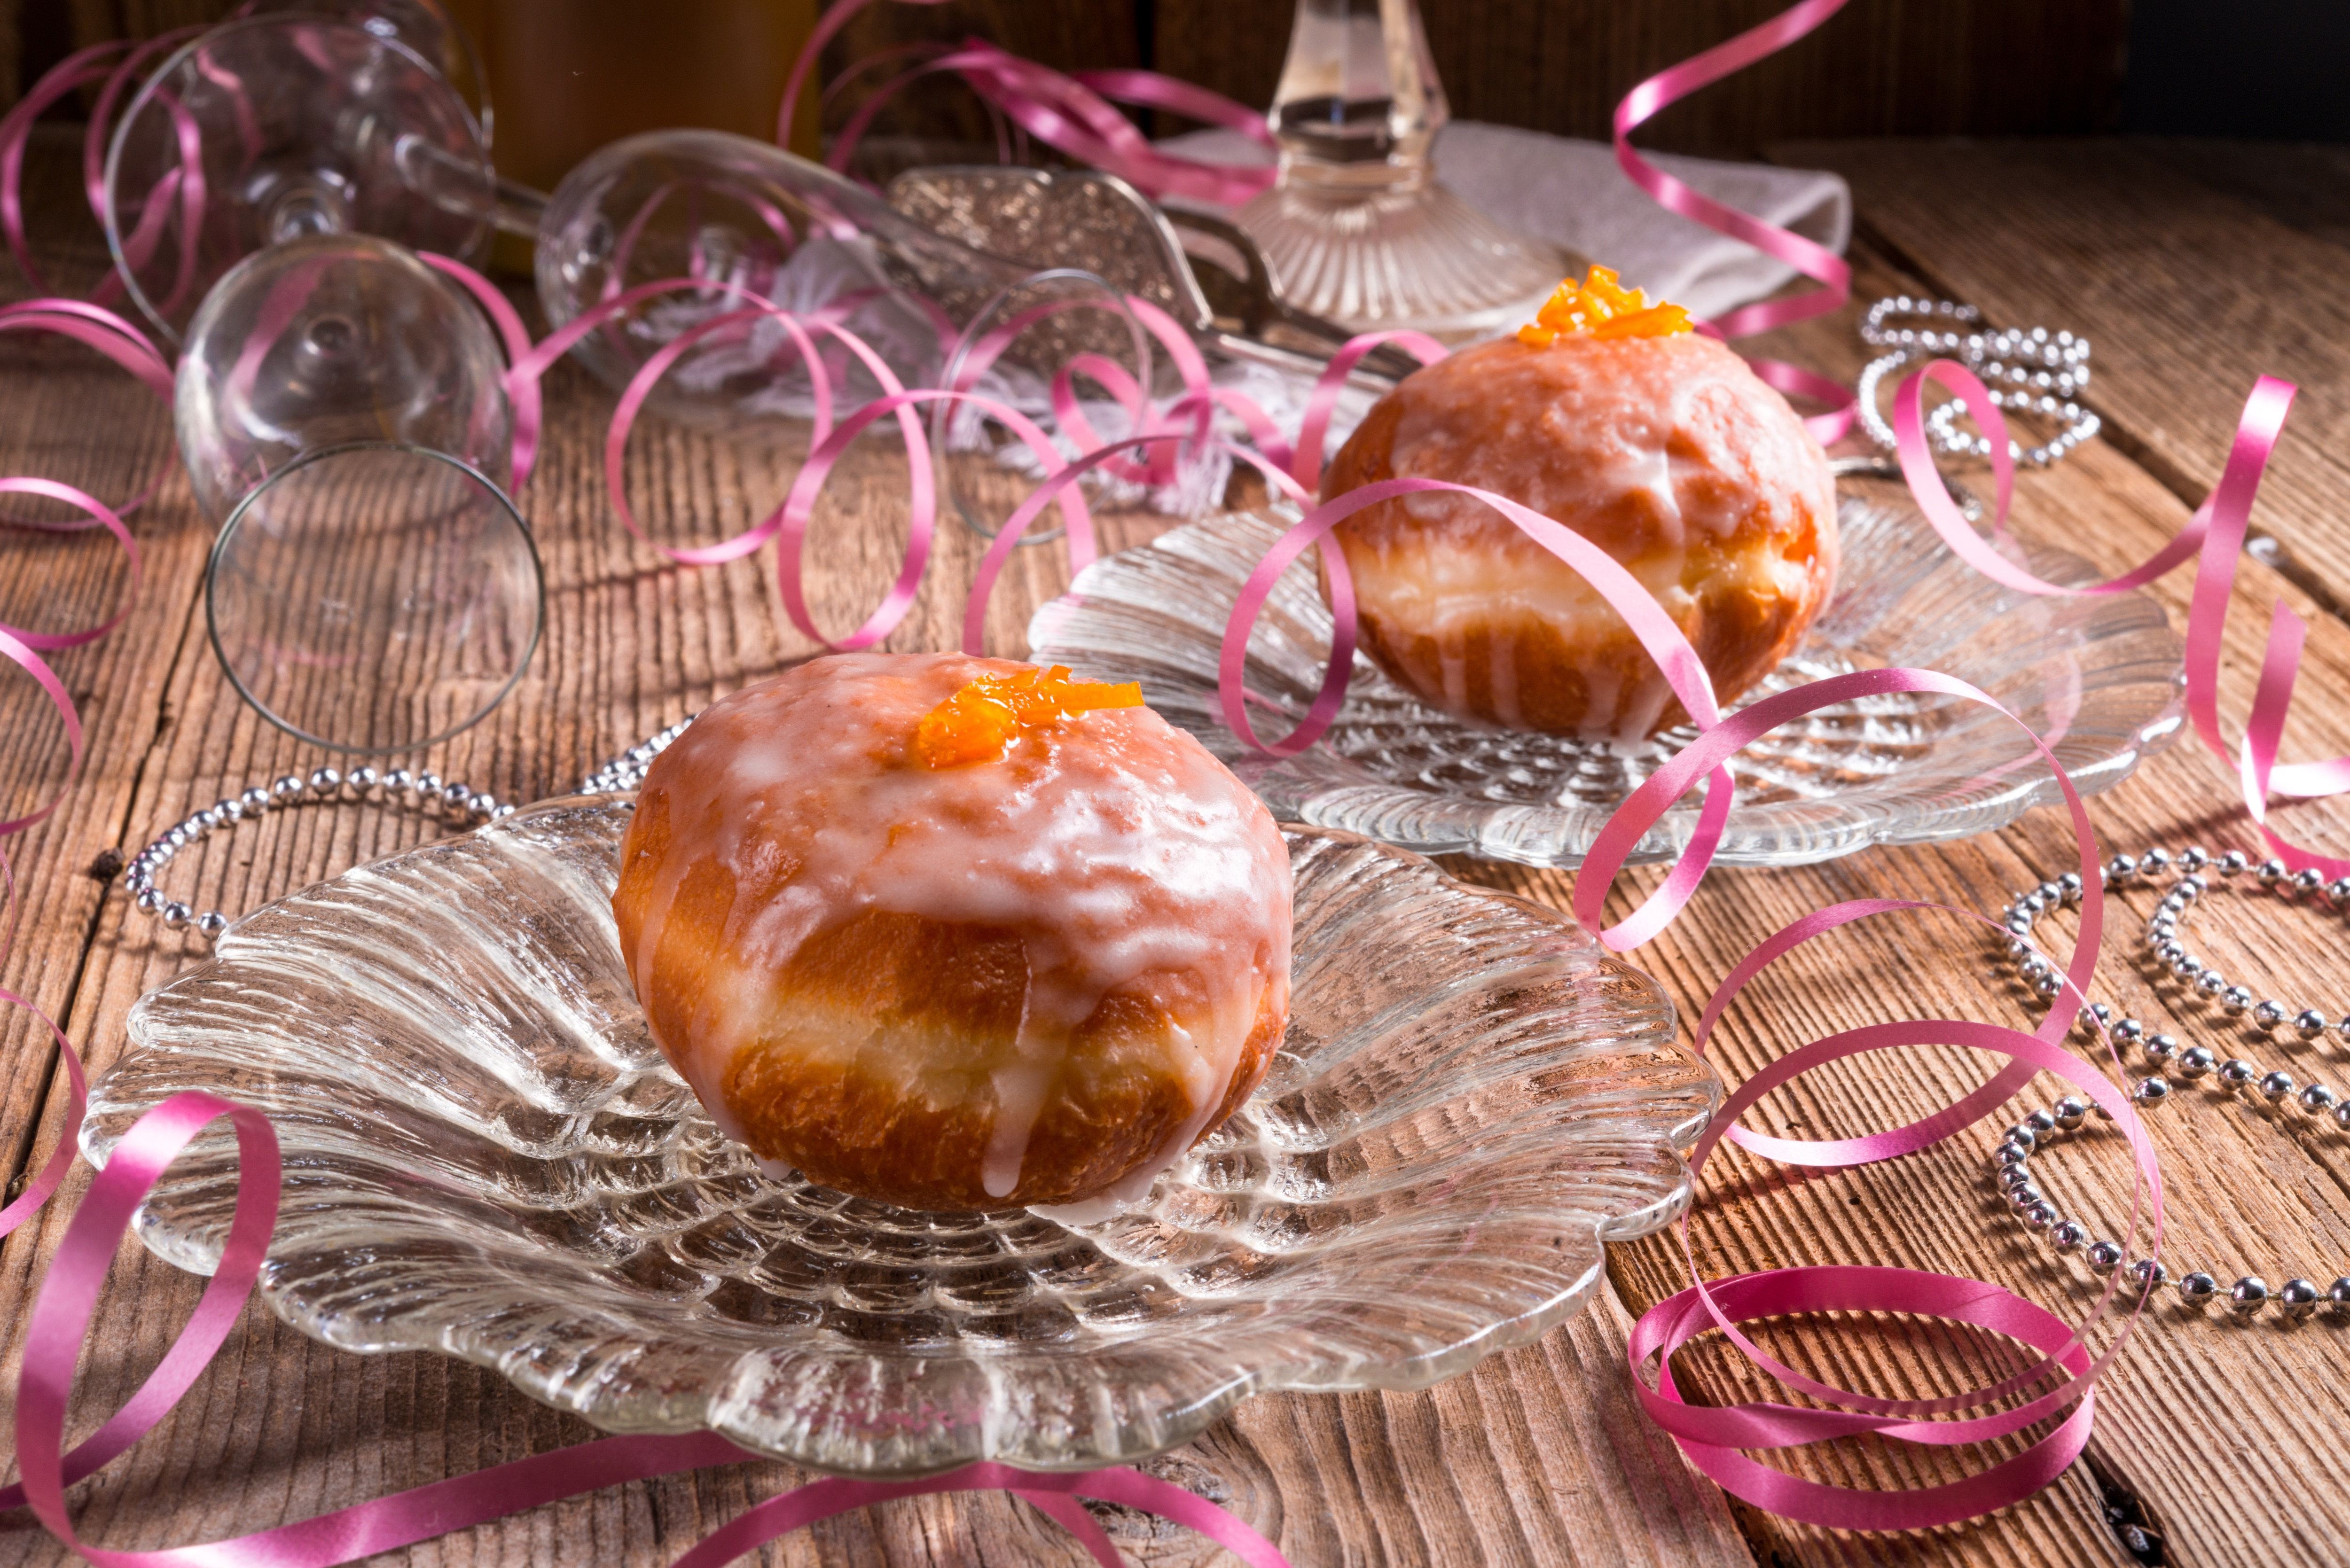 Jelly doughnuts with ribbons around them (Shutterstock)